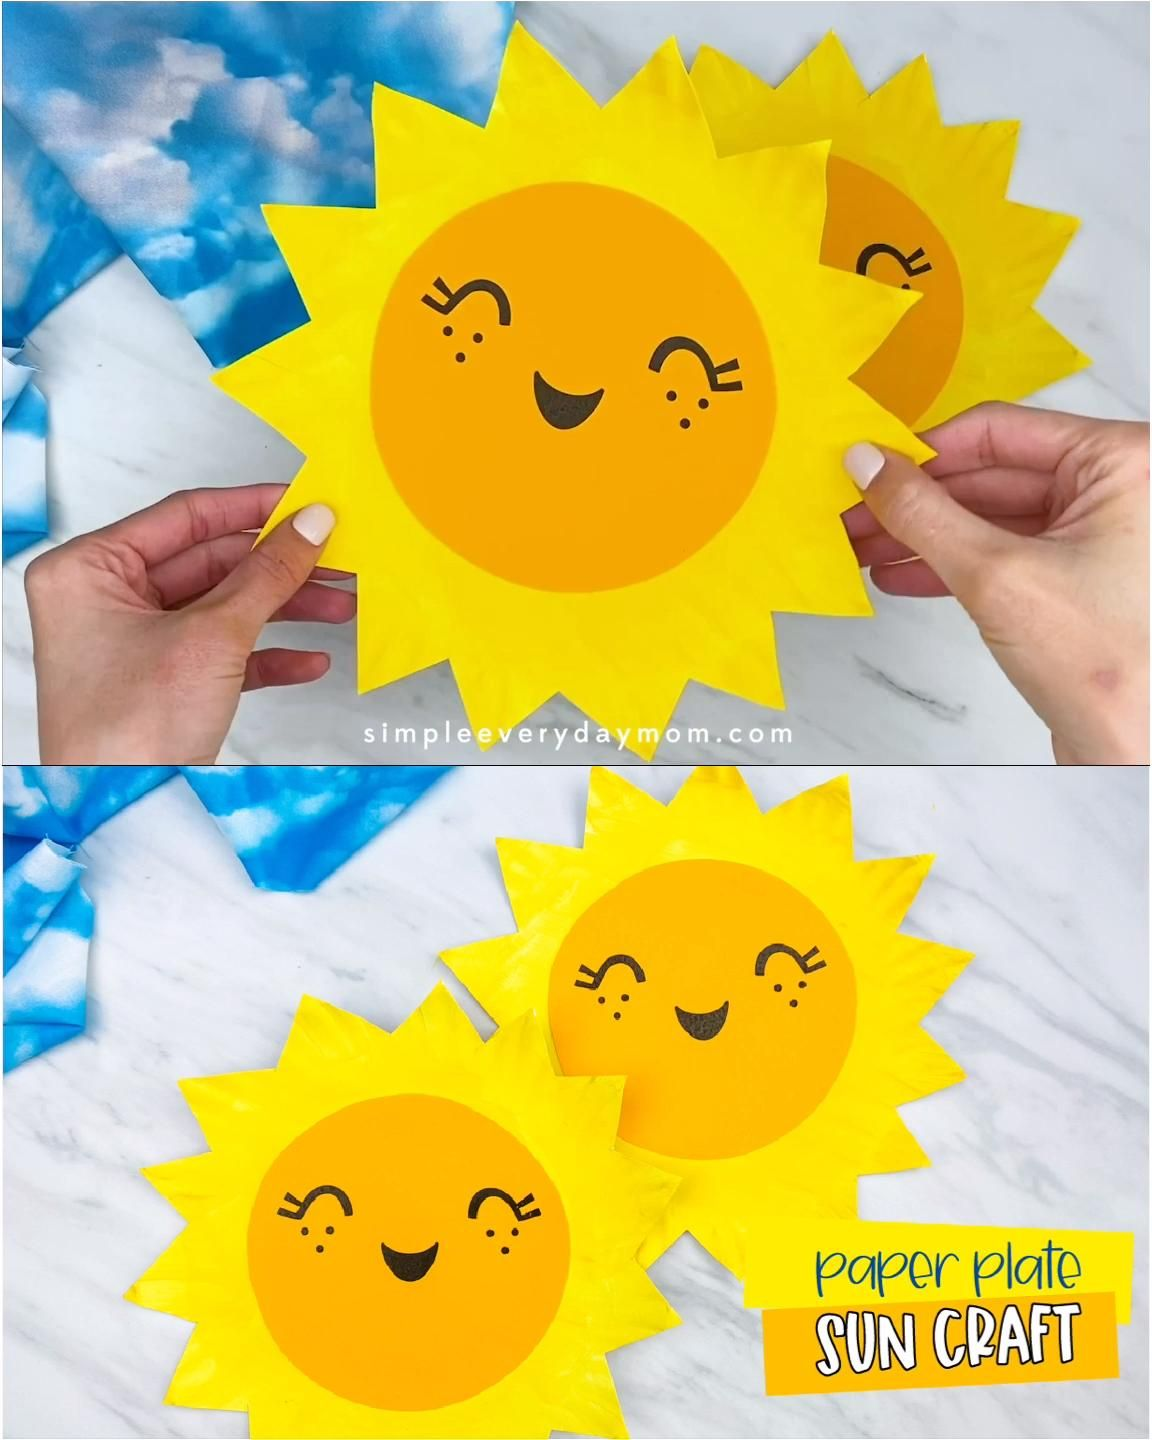 This easy paper plate sun for kids is a fun summer craft idea! Kids of all ages, from toddlers, to preschool, prek and kindergarten will love making this project. Download the free template and make your own at home or at school.  #simpleeverydaymom #paperplatecrafts #kidscrafts